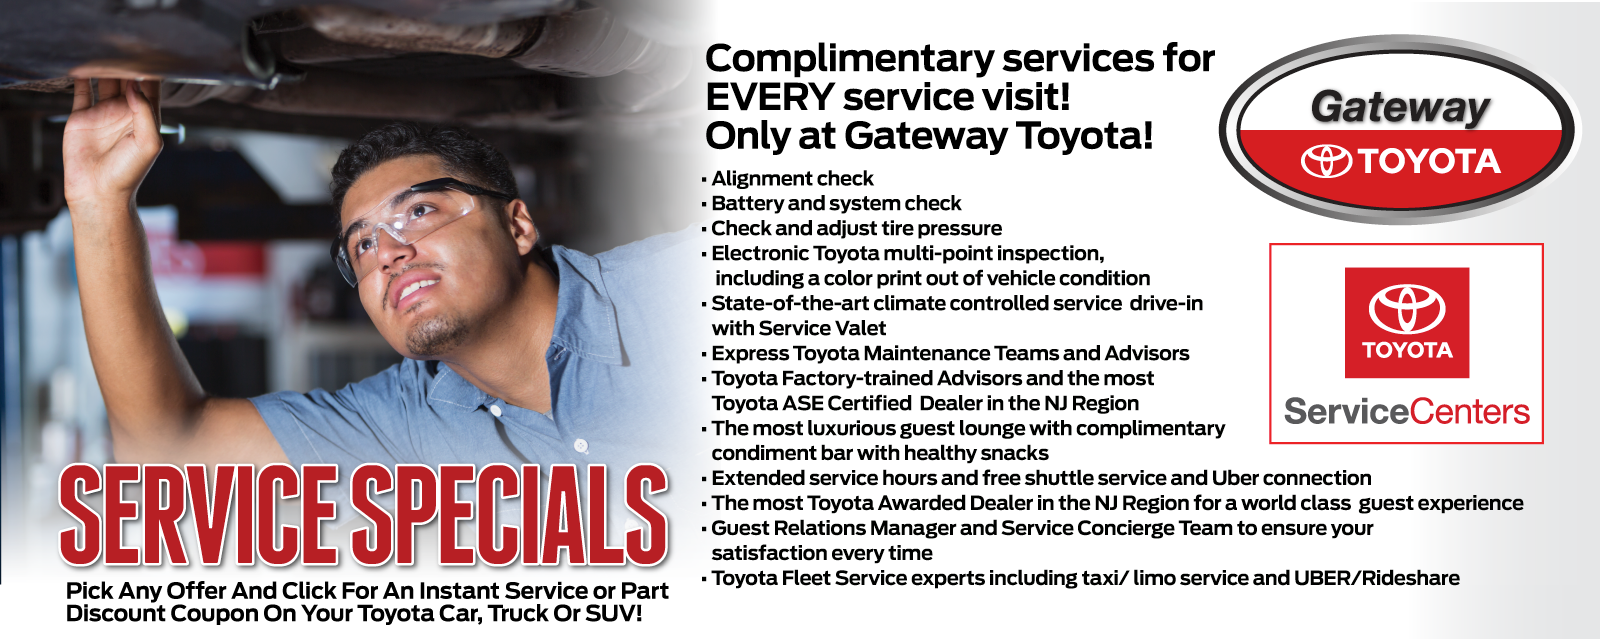 Complimentary services for EVERY service visit! Only at Gateway Toyota!